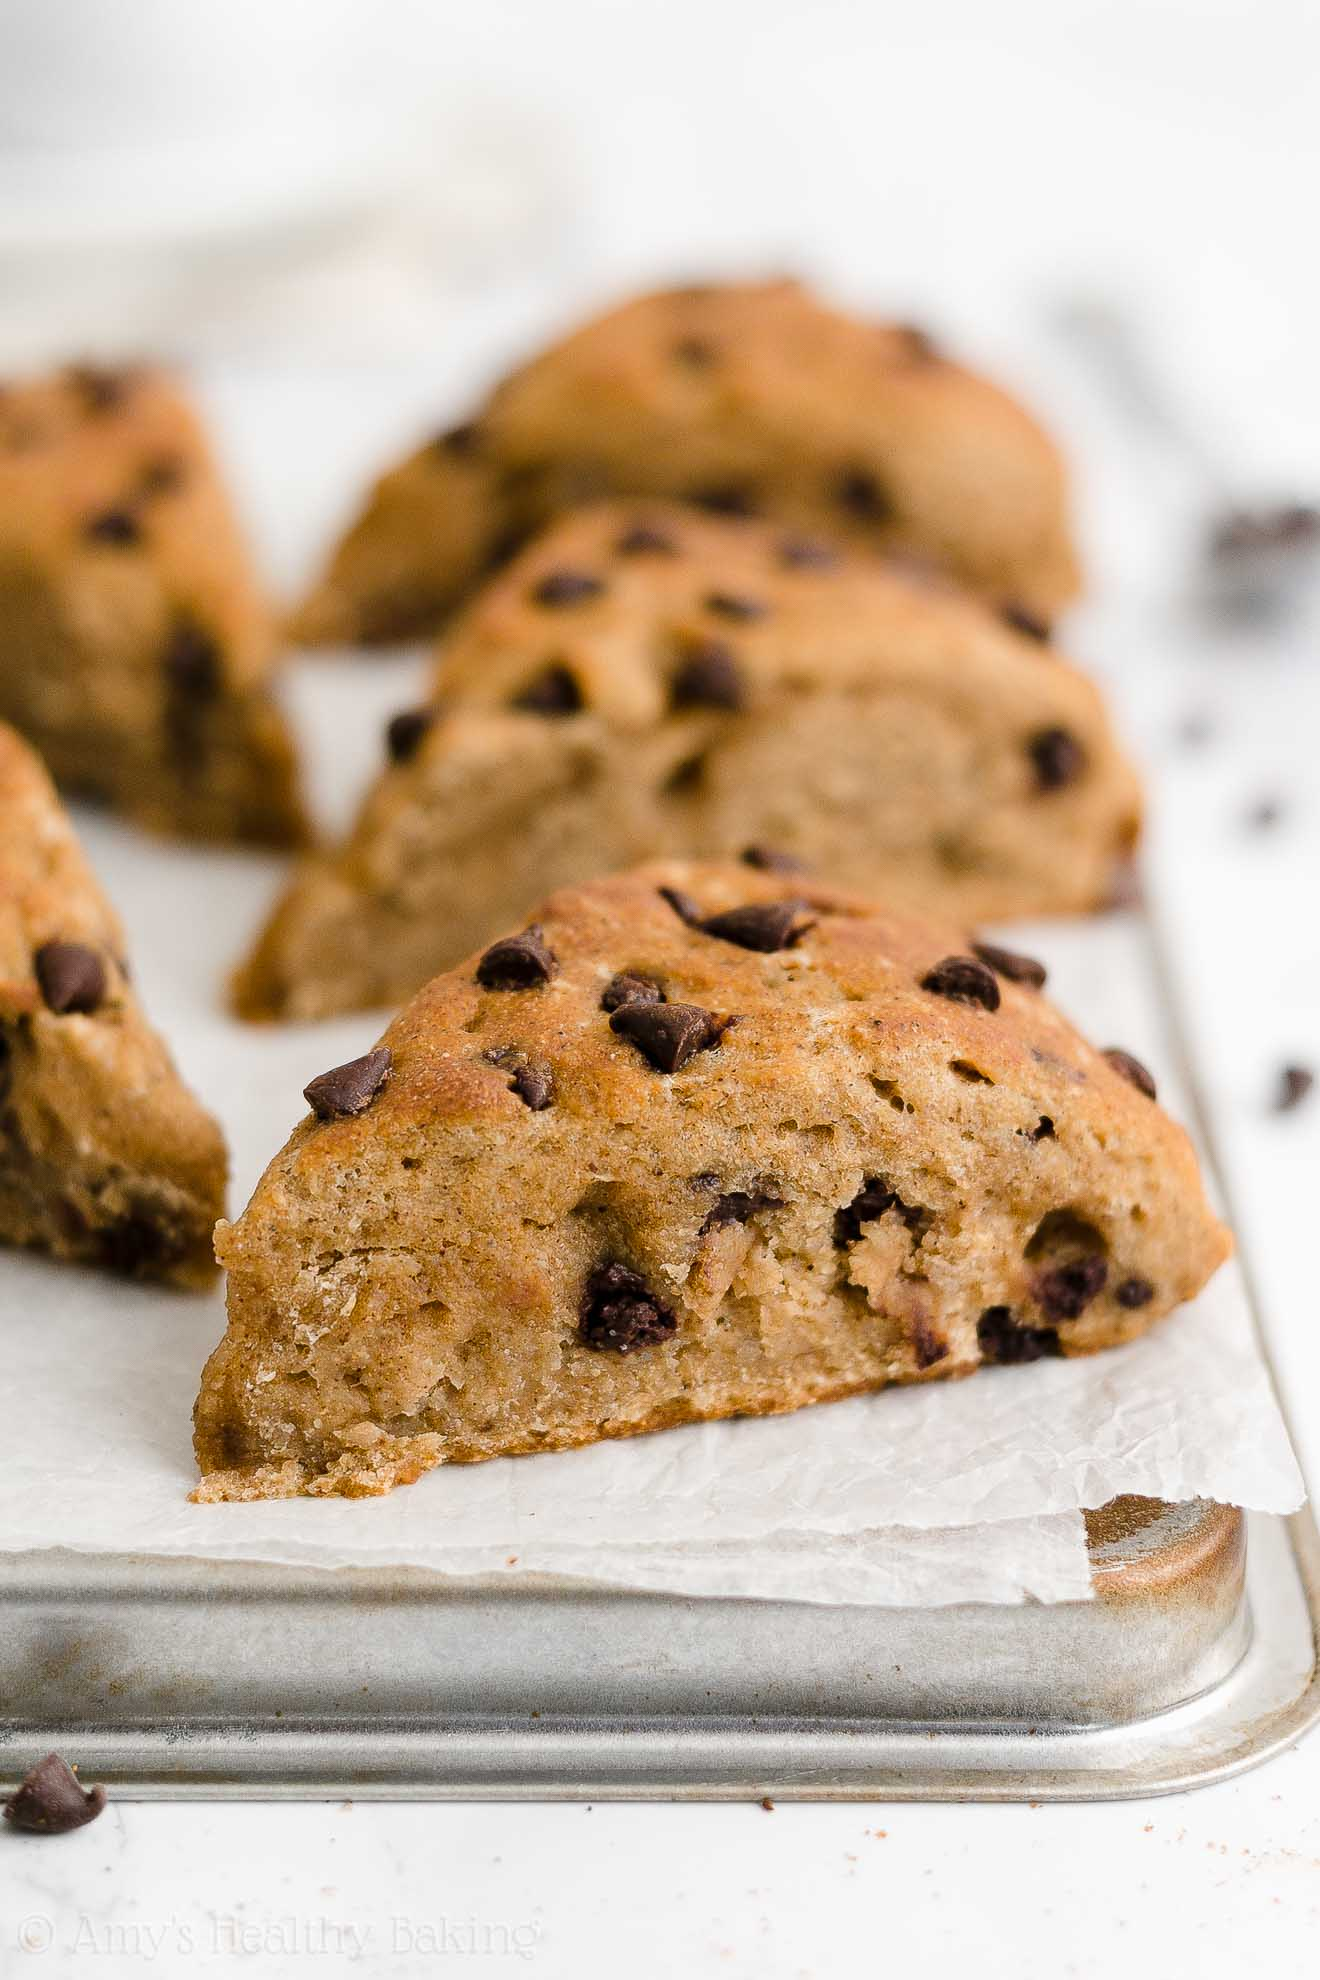 Easy Healthy Homemade Low Calorie No Egg Chai Spice Chocolate Chip Scones